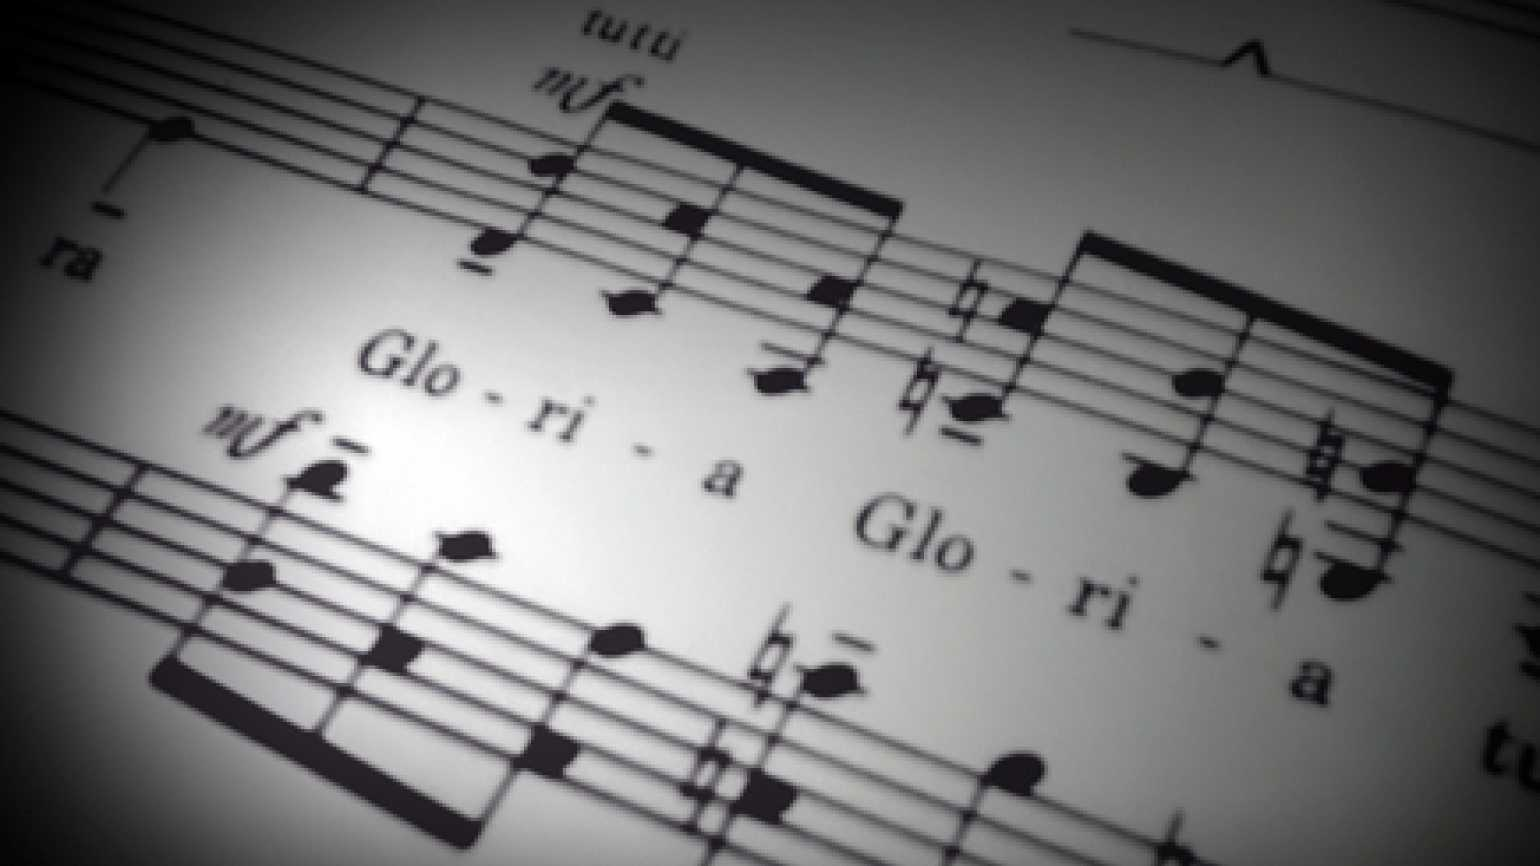 musical notes from a hymn